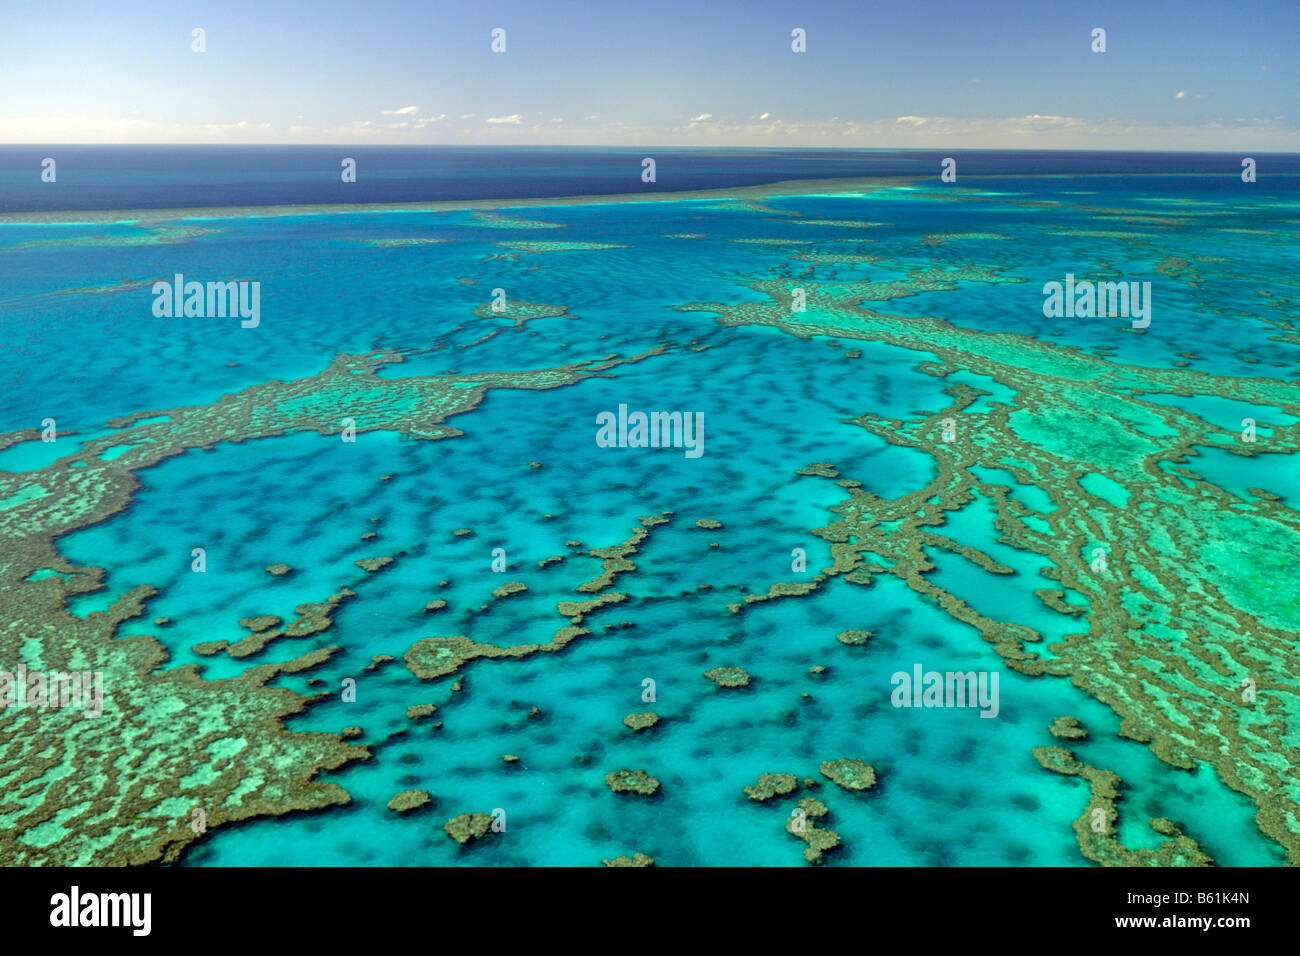 reefs-and-atolls-of-the-great-barrier-re